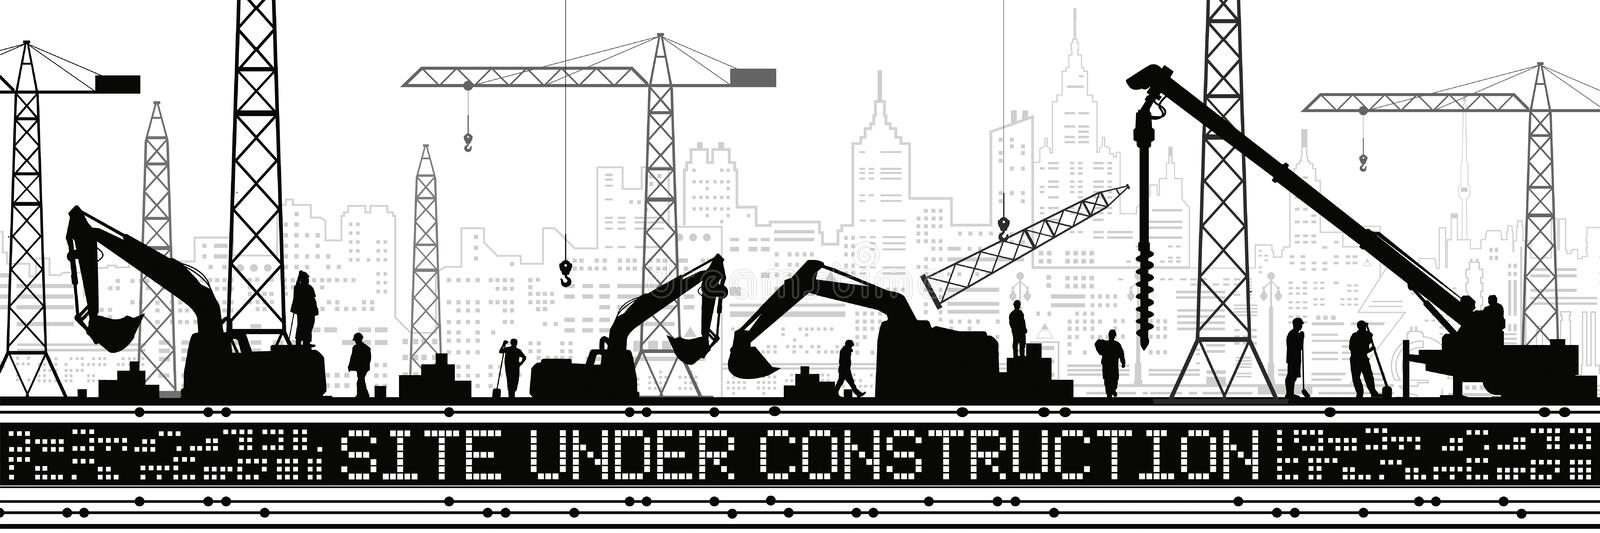 Site Under Construction illustration. Buildings panorama, industrial landscape, Constructional cranes and excavators, urban scene. People working. Vector lines royalty free illustration